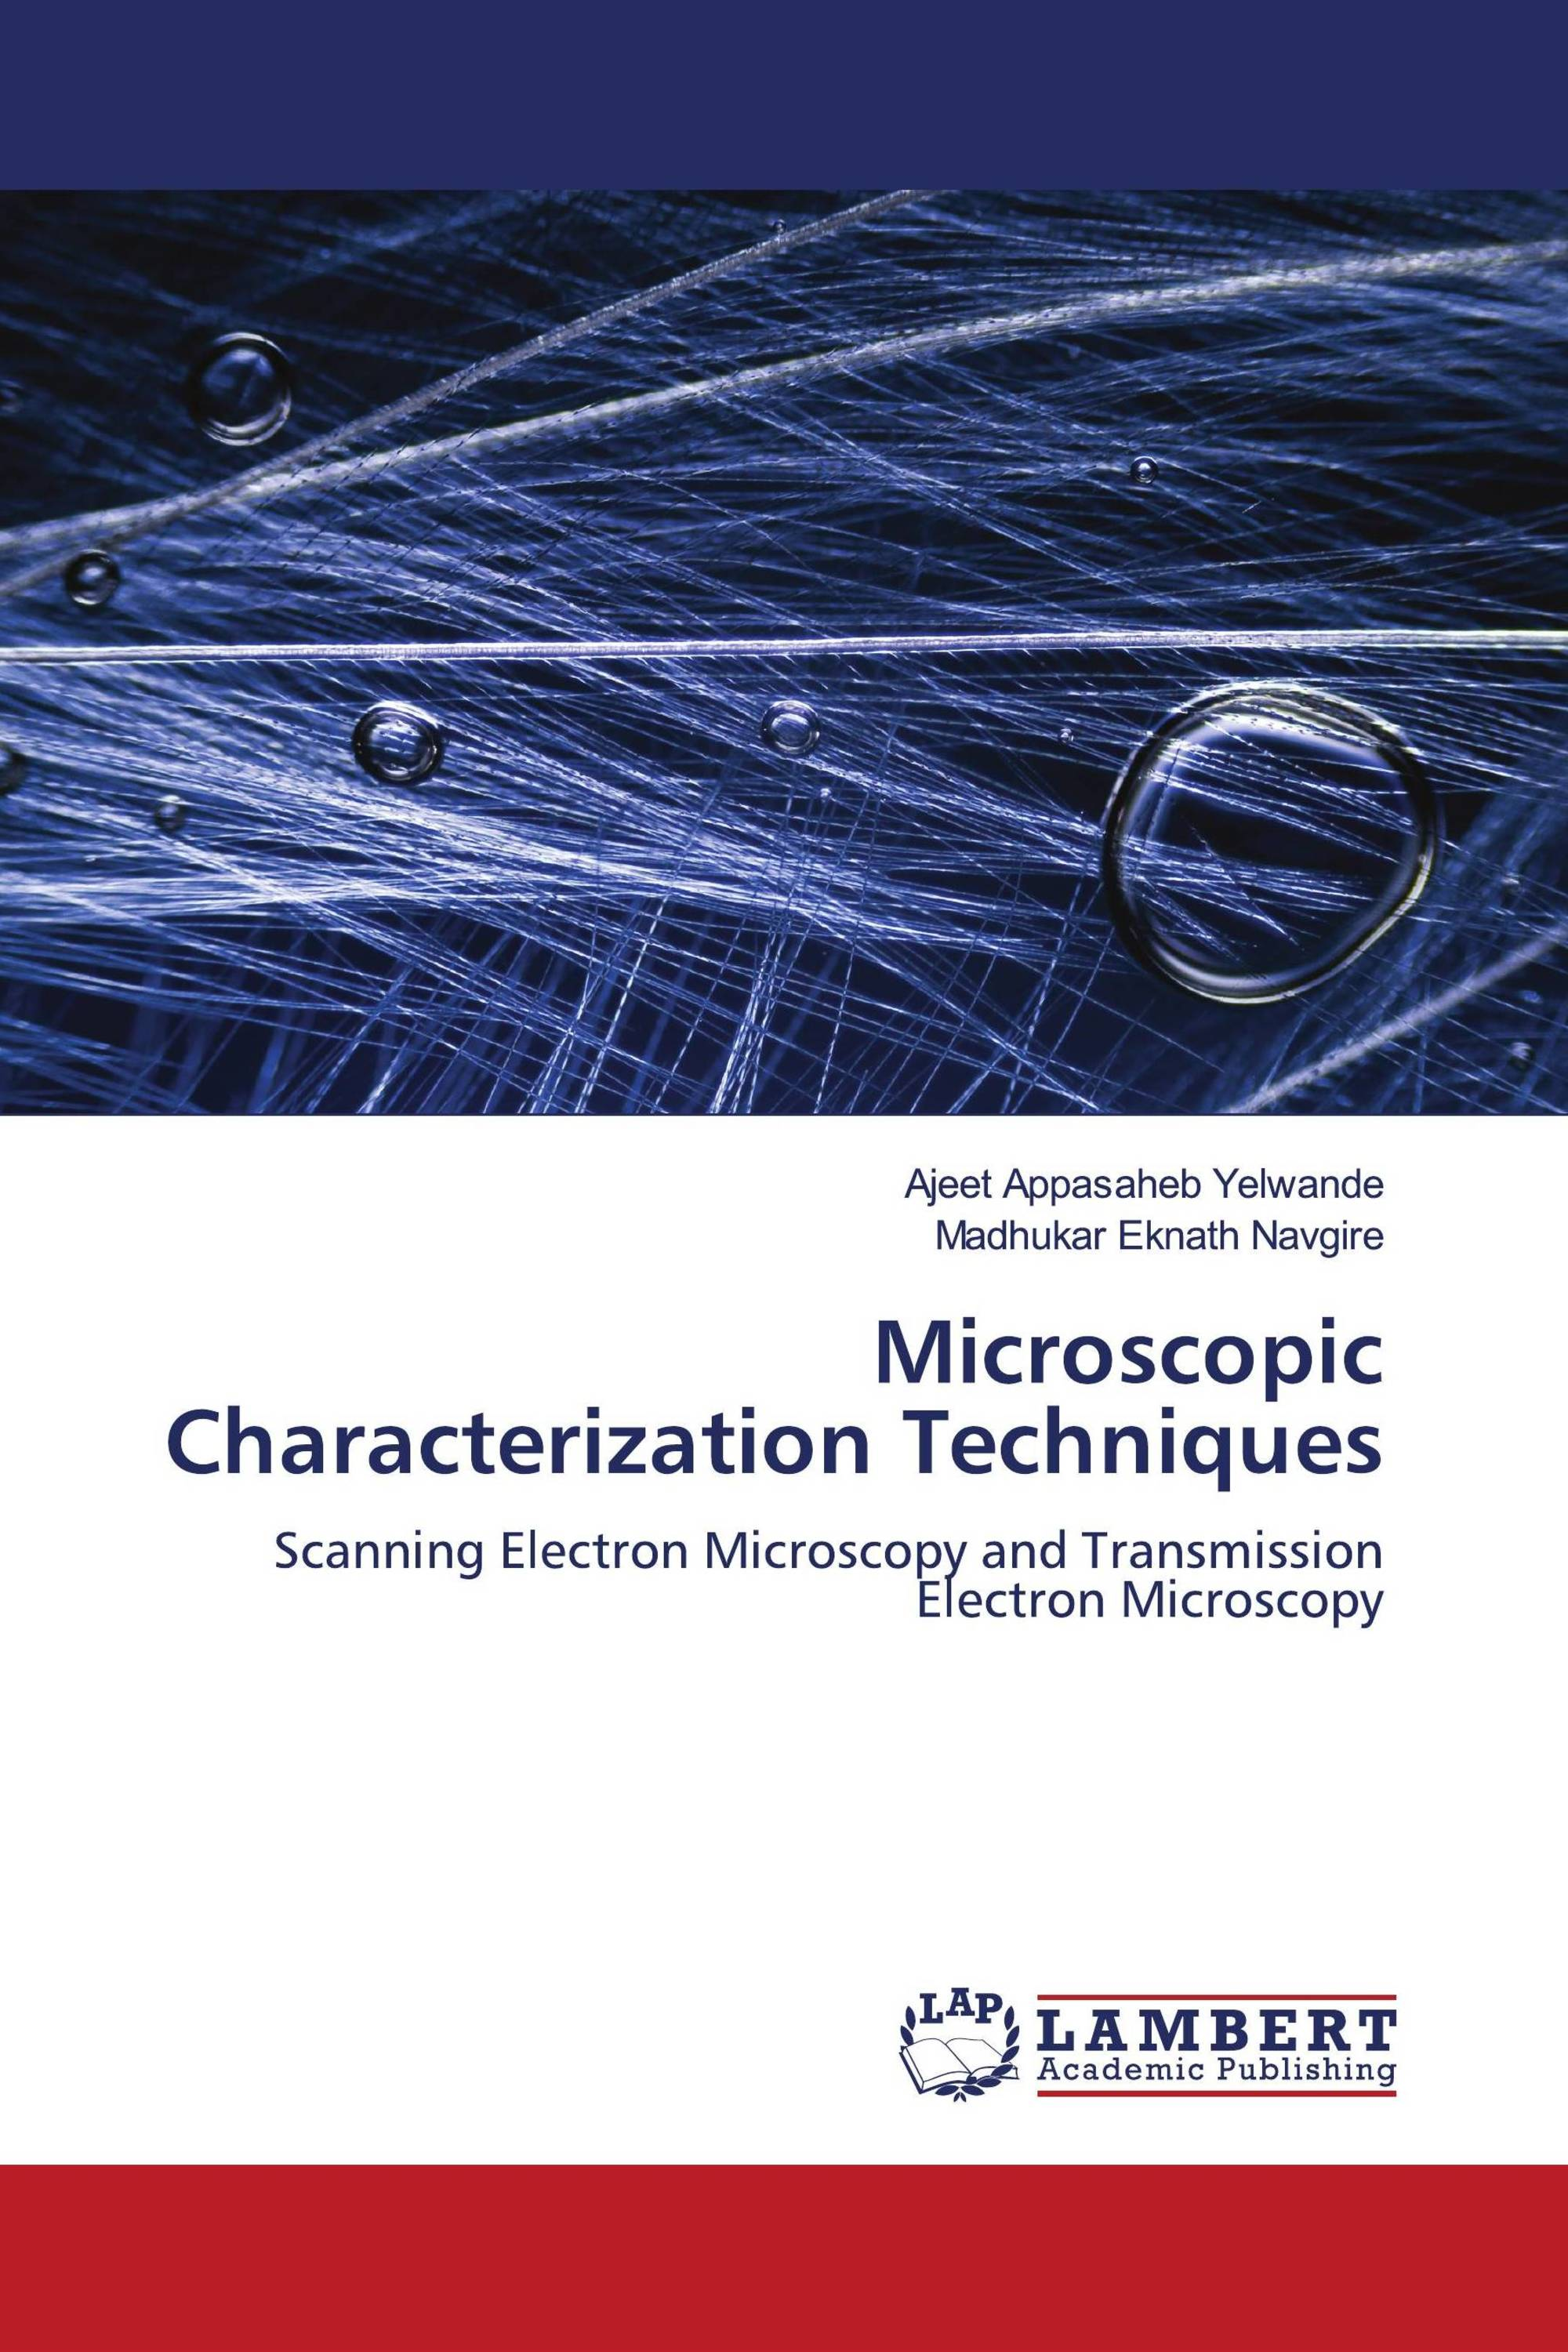 Microscopic Characterization Techniques